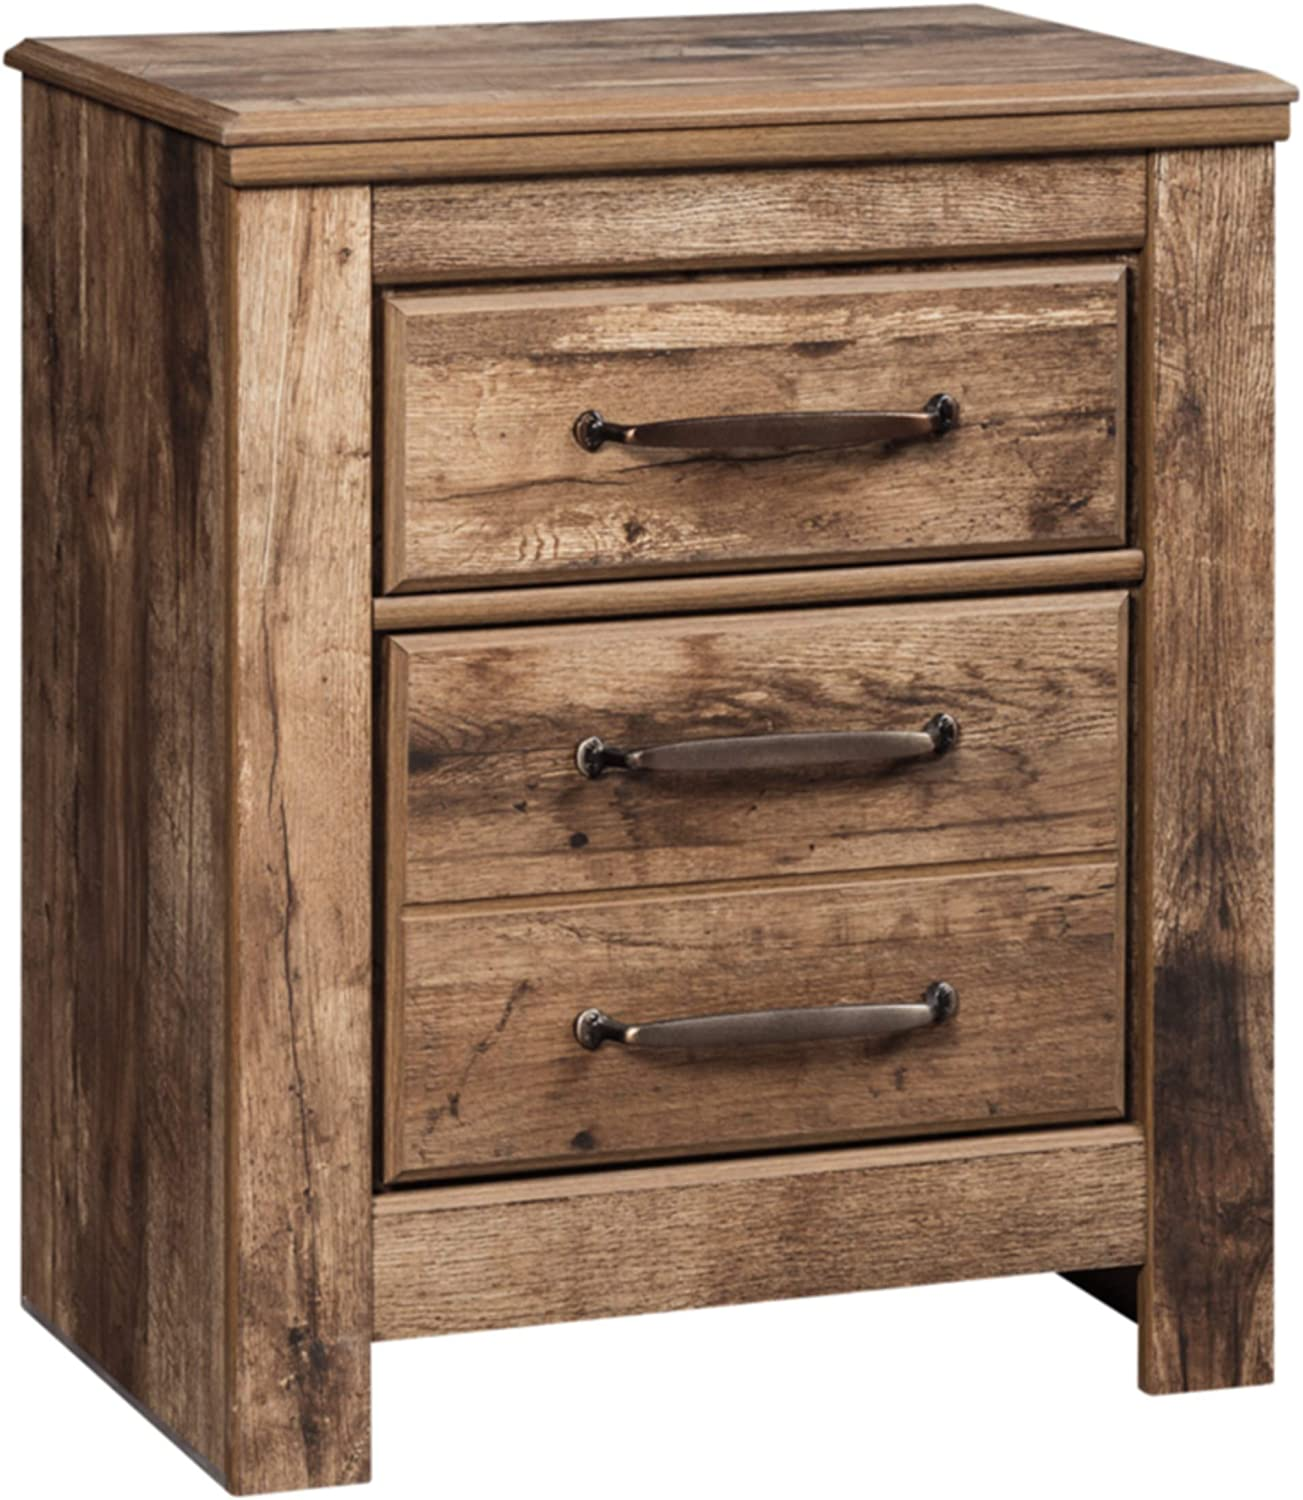 Signature Design by Ashley Blaneville Nightstand, 15.91 D x 24.21 W x 29.23 H, Brown